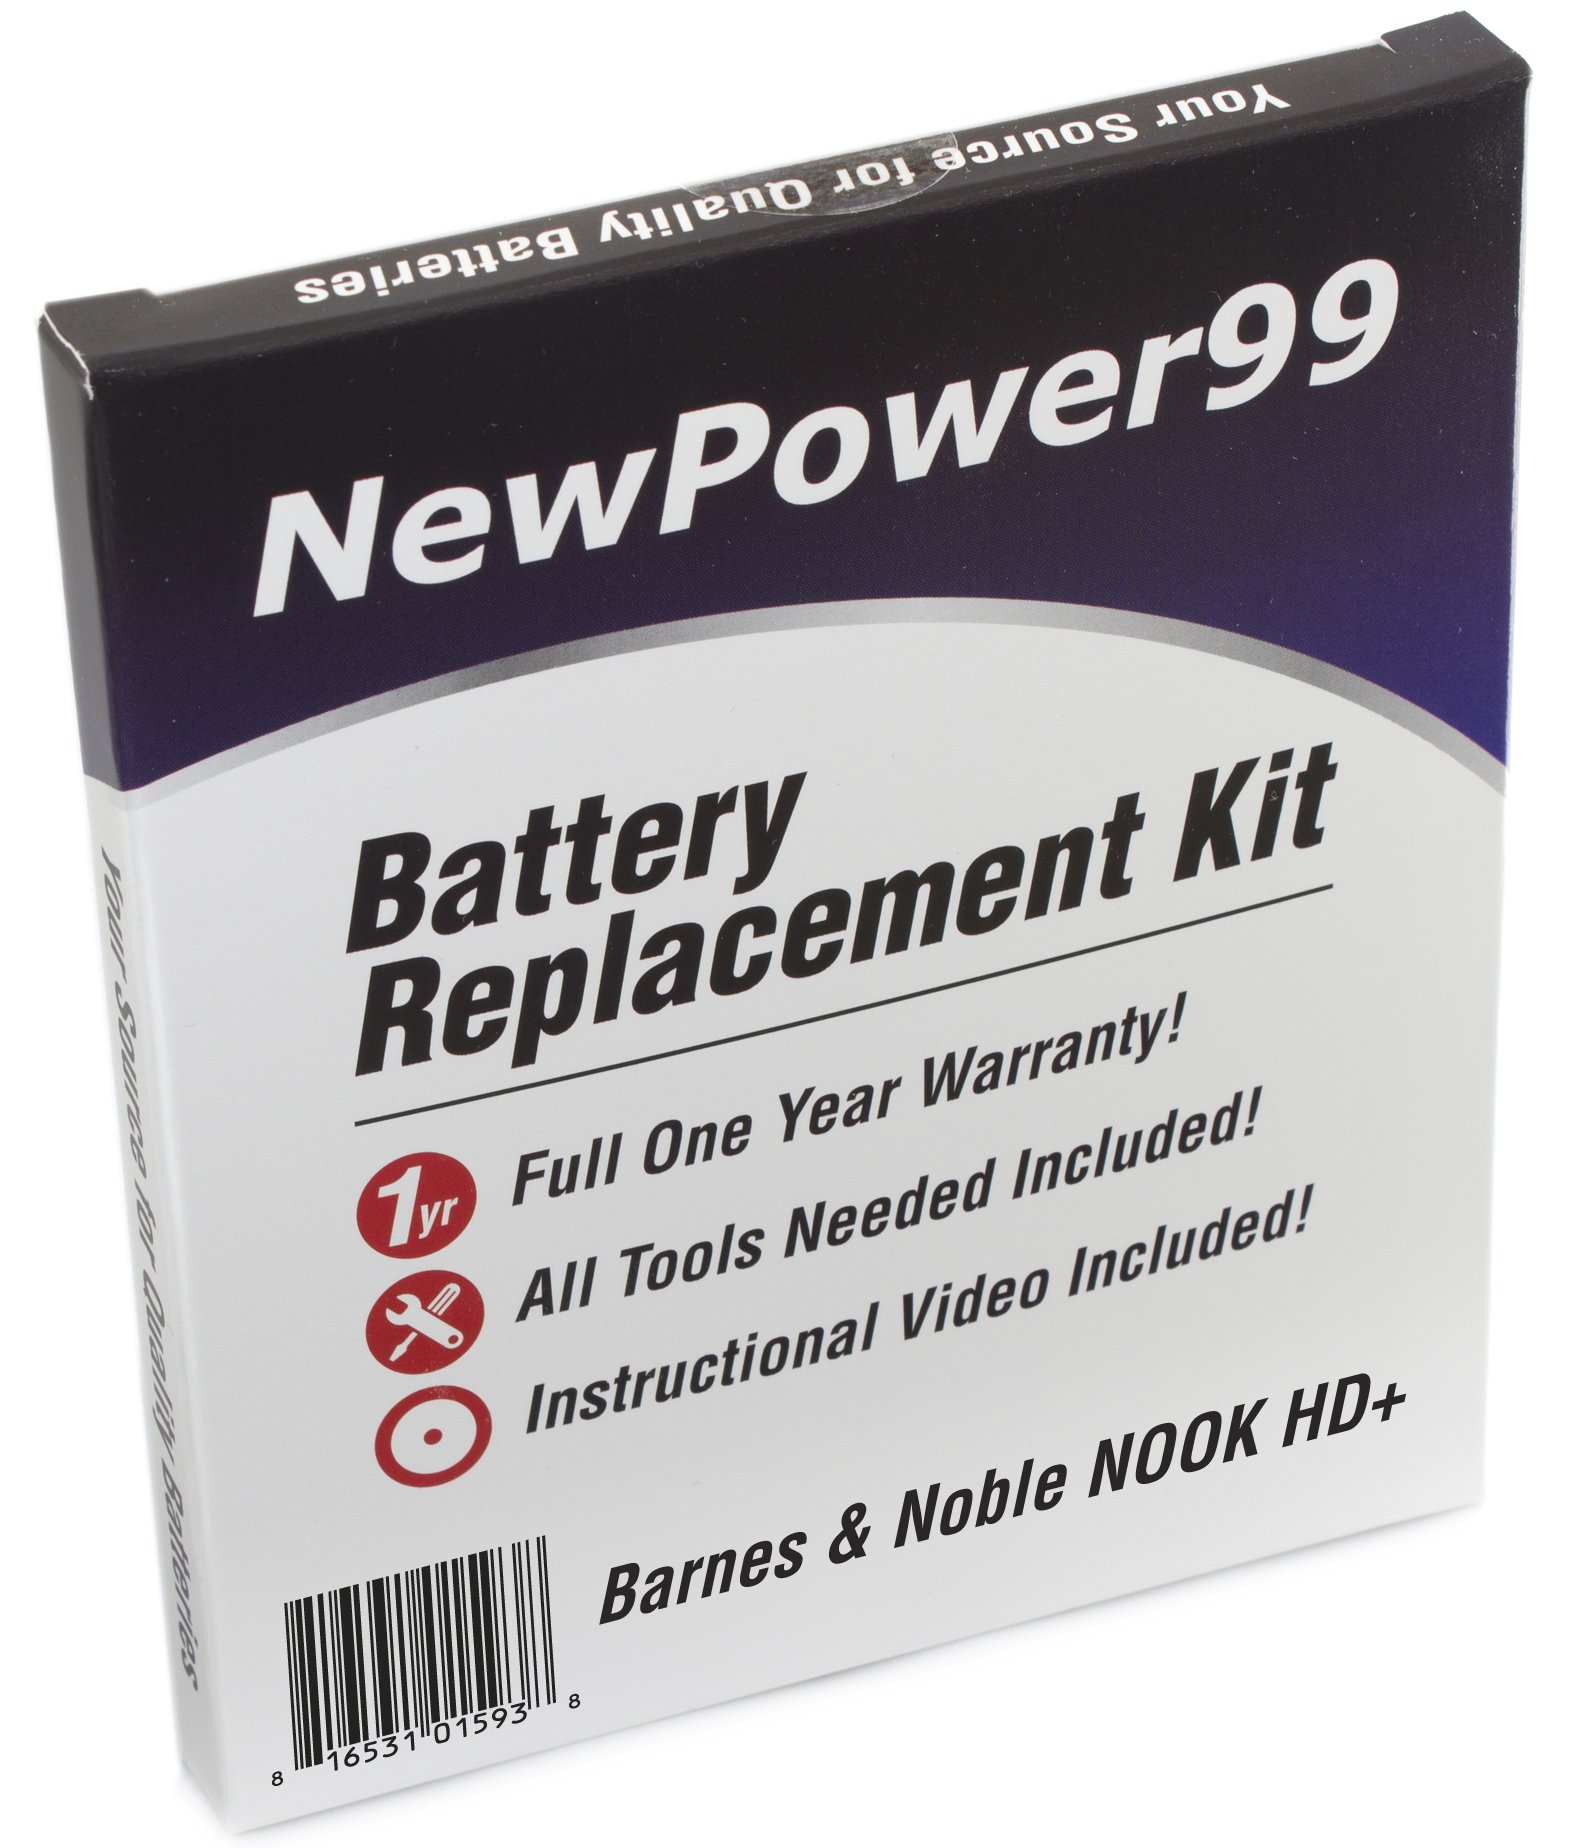 Battery Replacement Kit for the Barnes & Noble NOOK HD+ 9'' Tablet with Installation Video, Tools, and Extended Life Battery